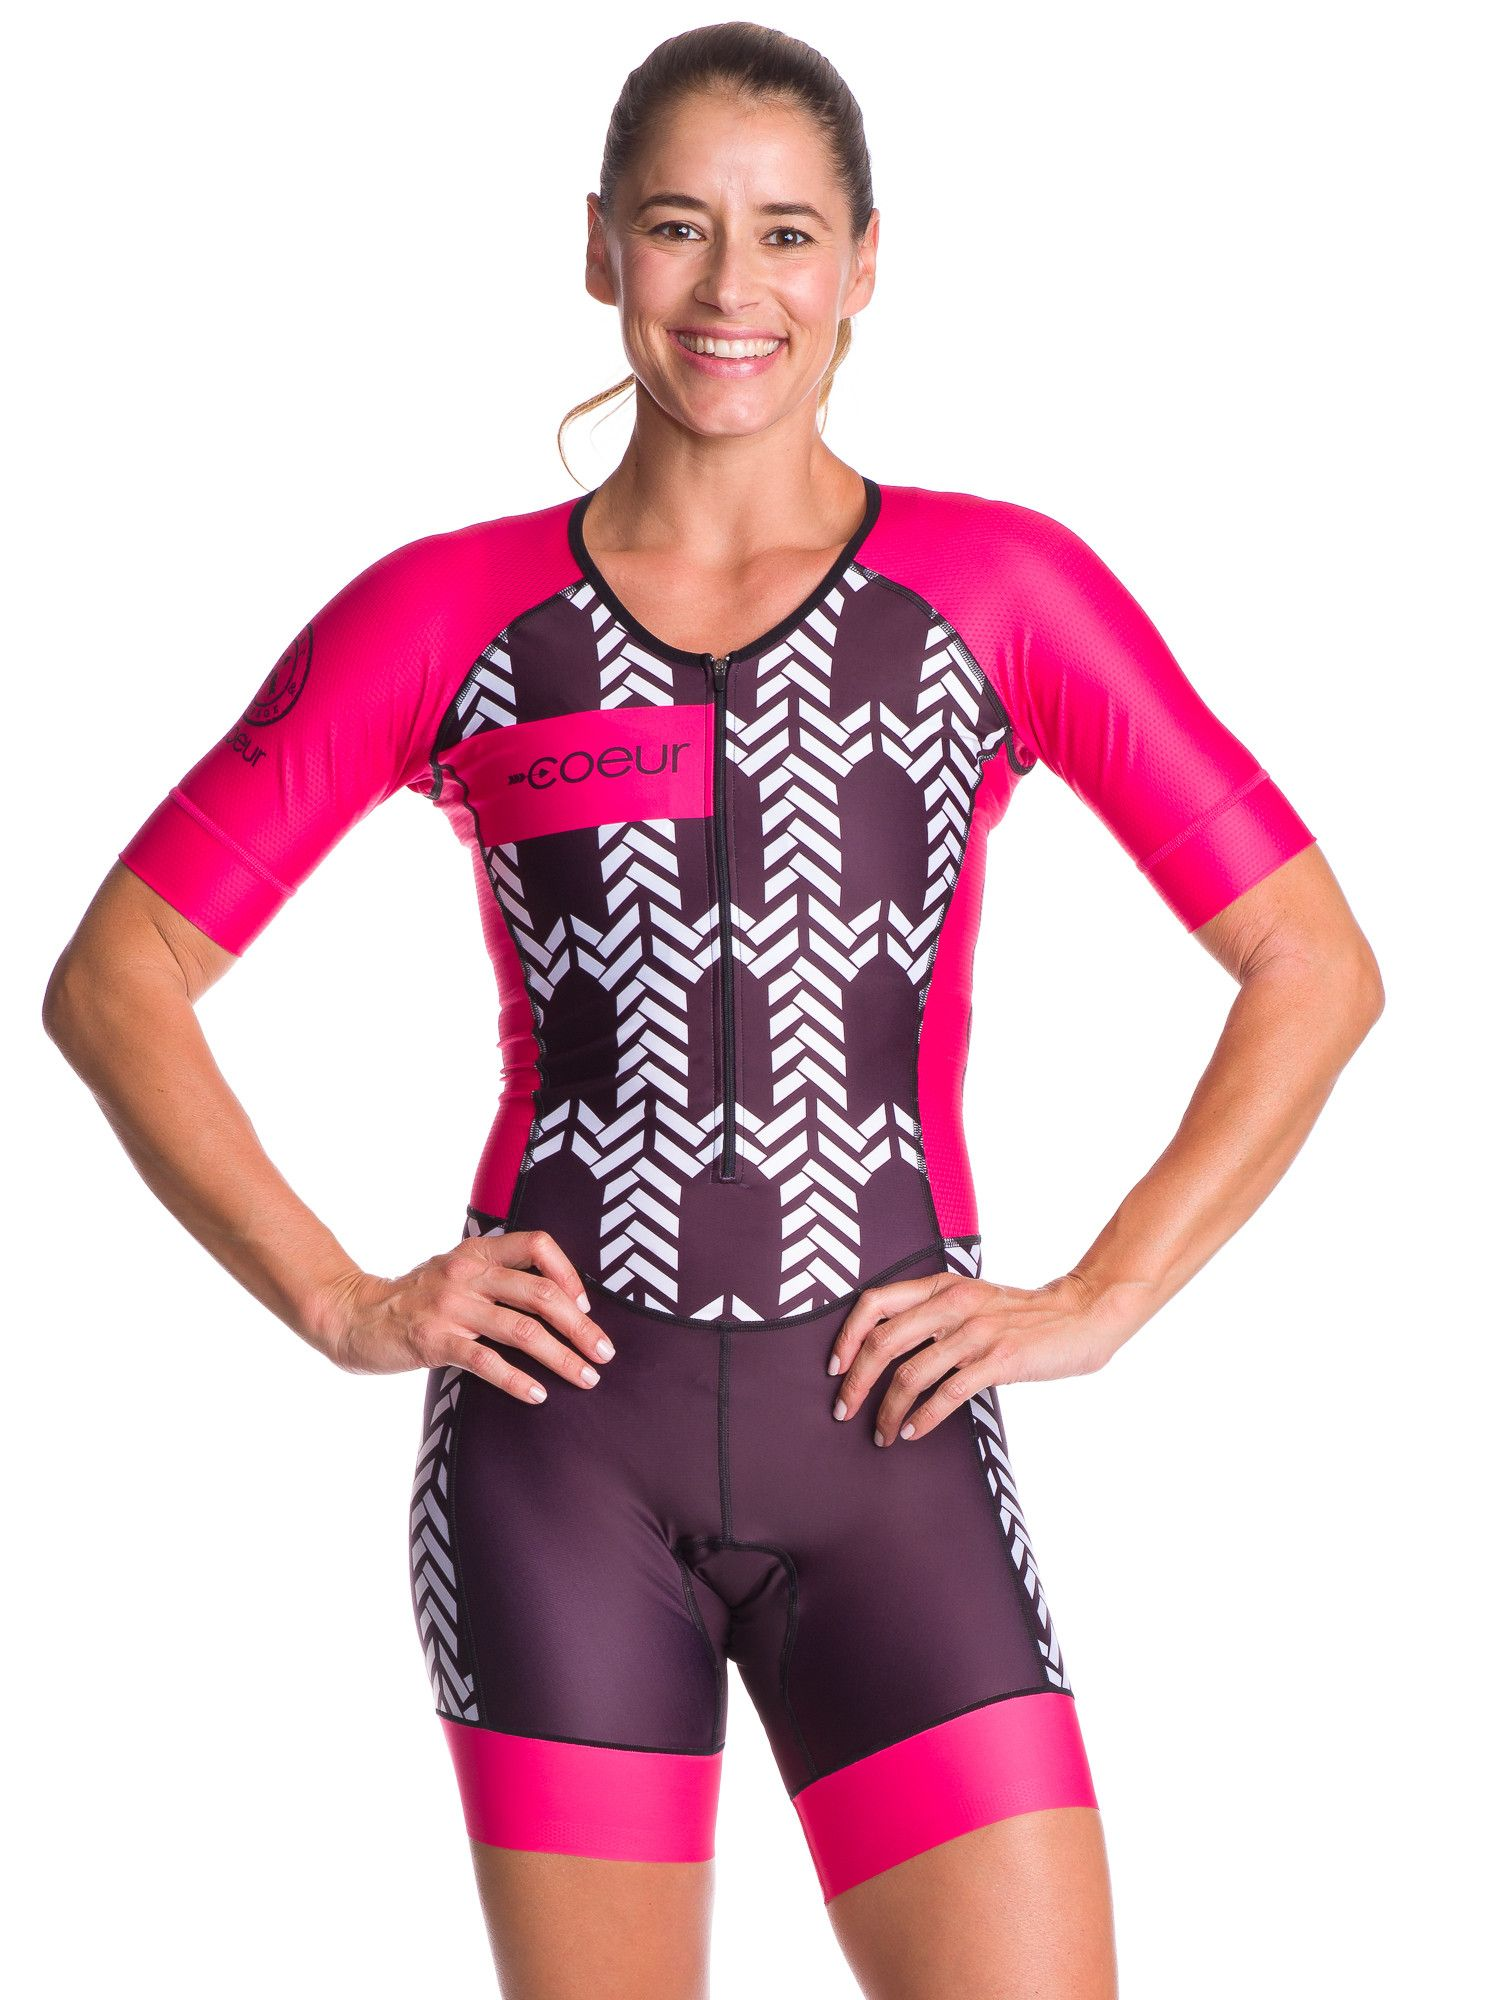 Women's Triathlon Suit with Sleeves For those who want the